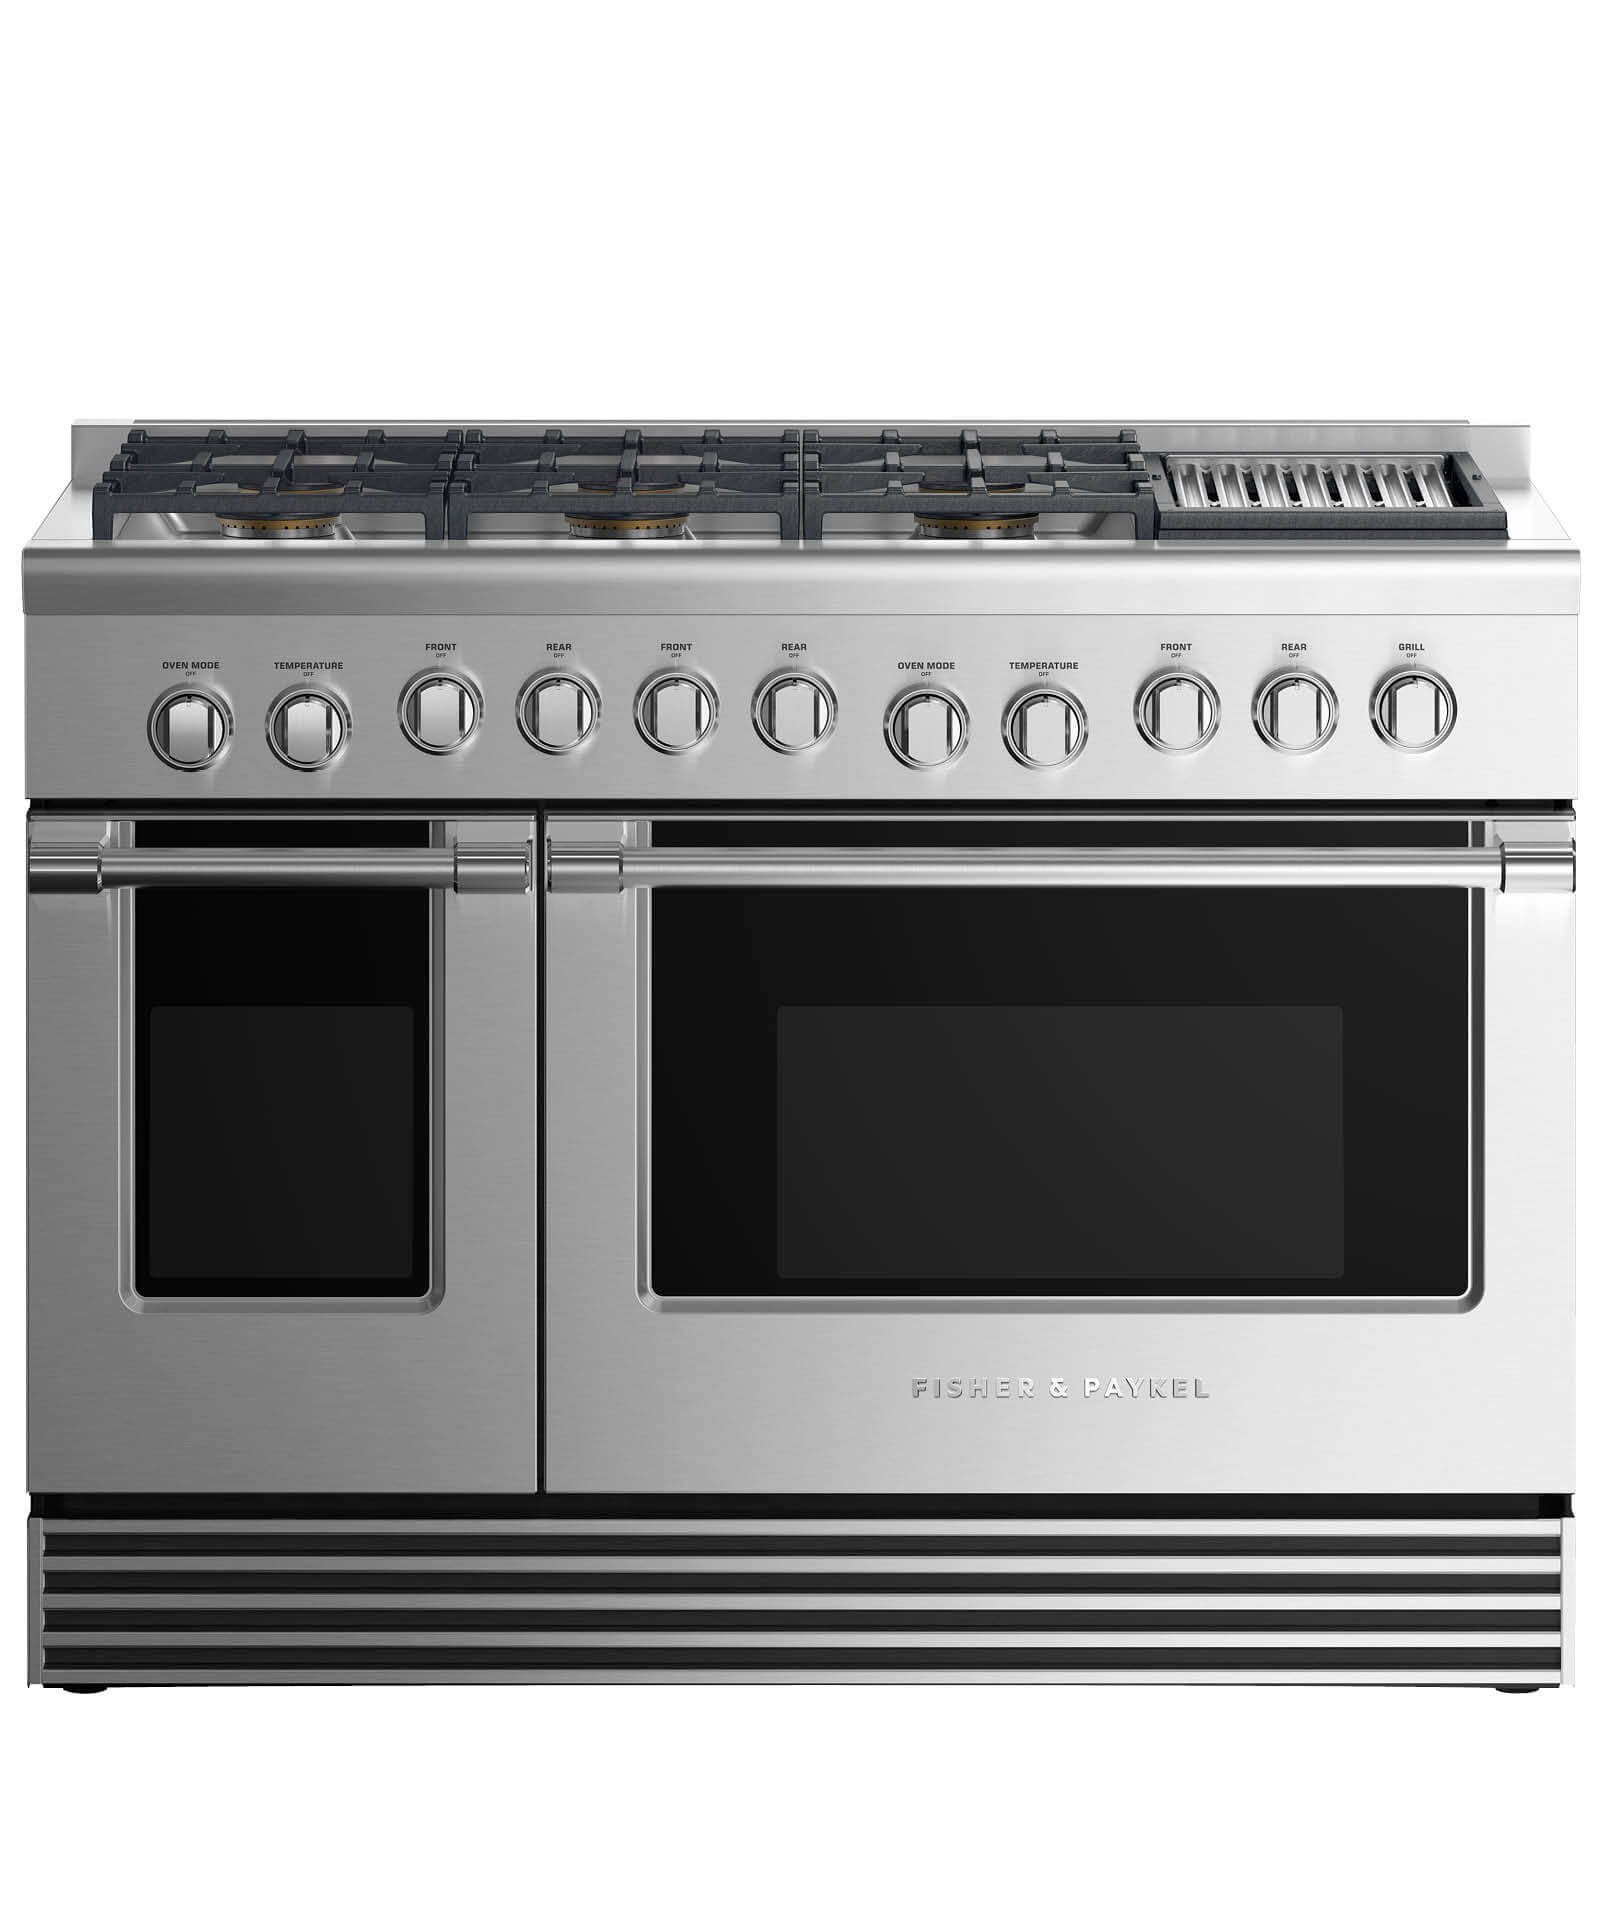 "Fisher and Paykel Dual Fuel Range 48"", 6 Burners with Grill (LPG)"